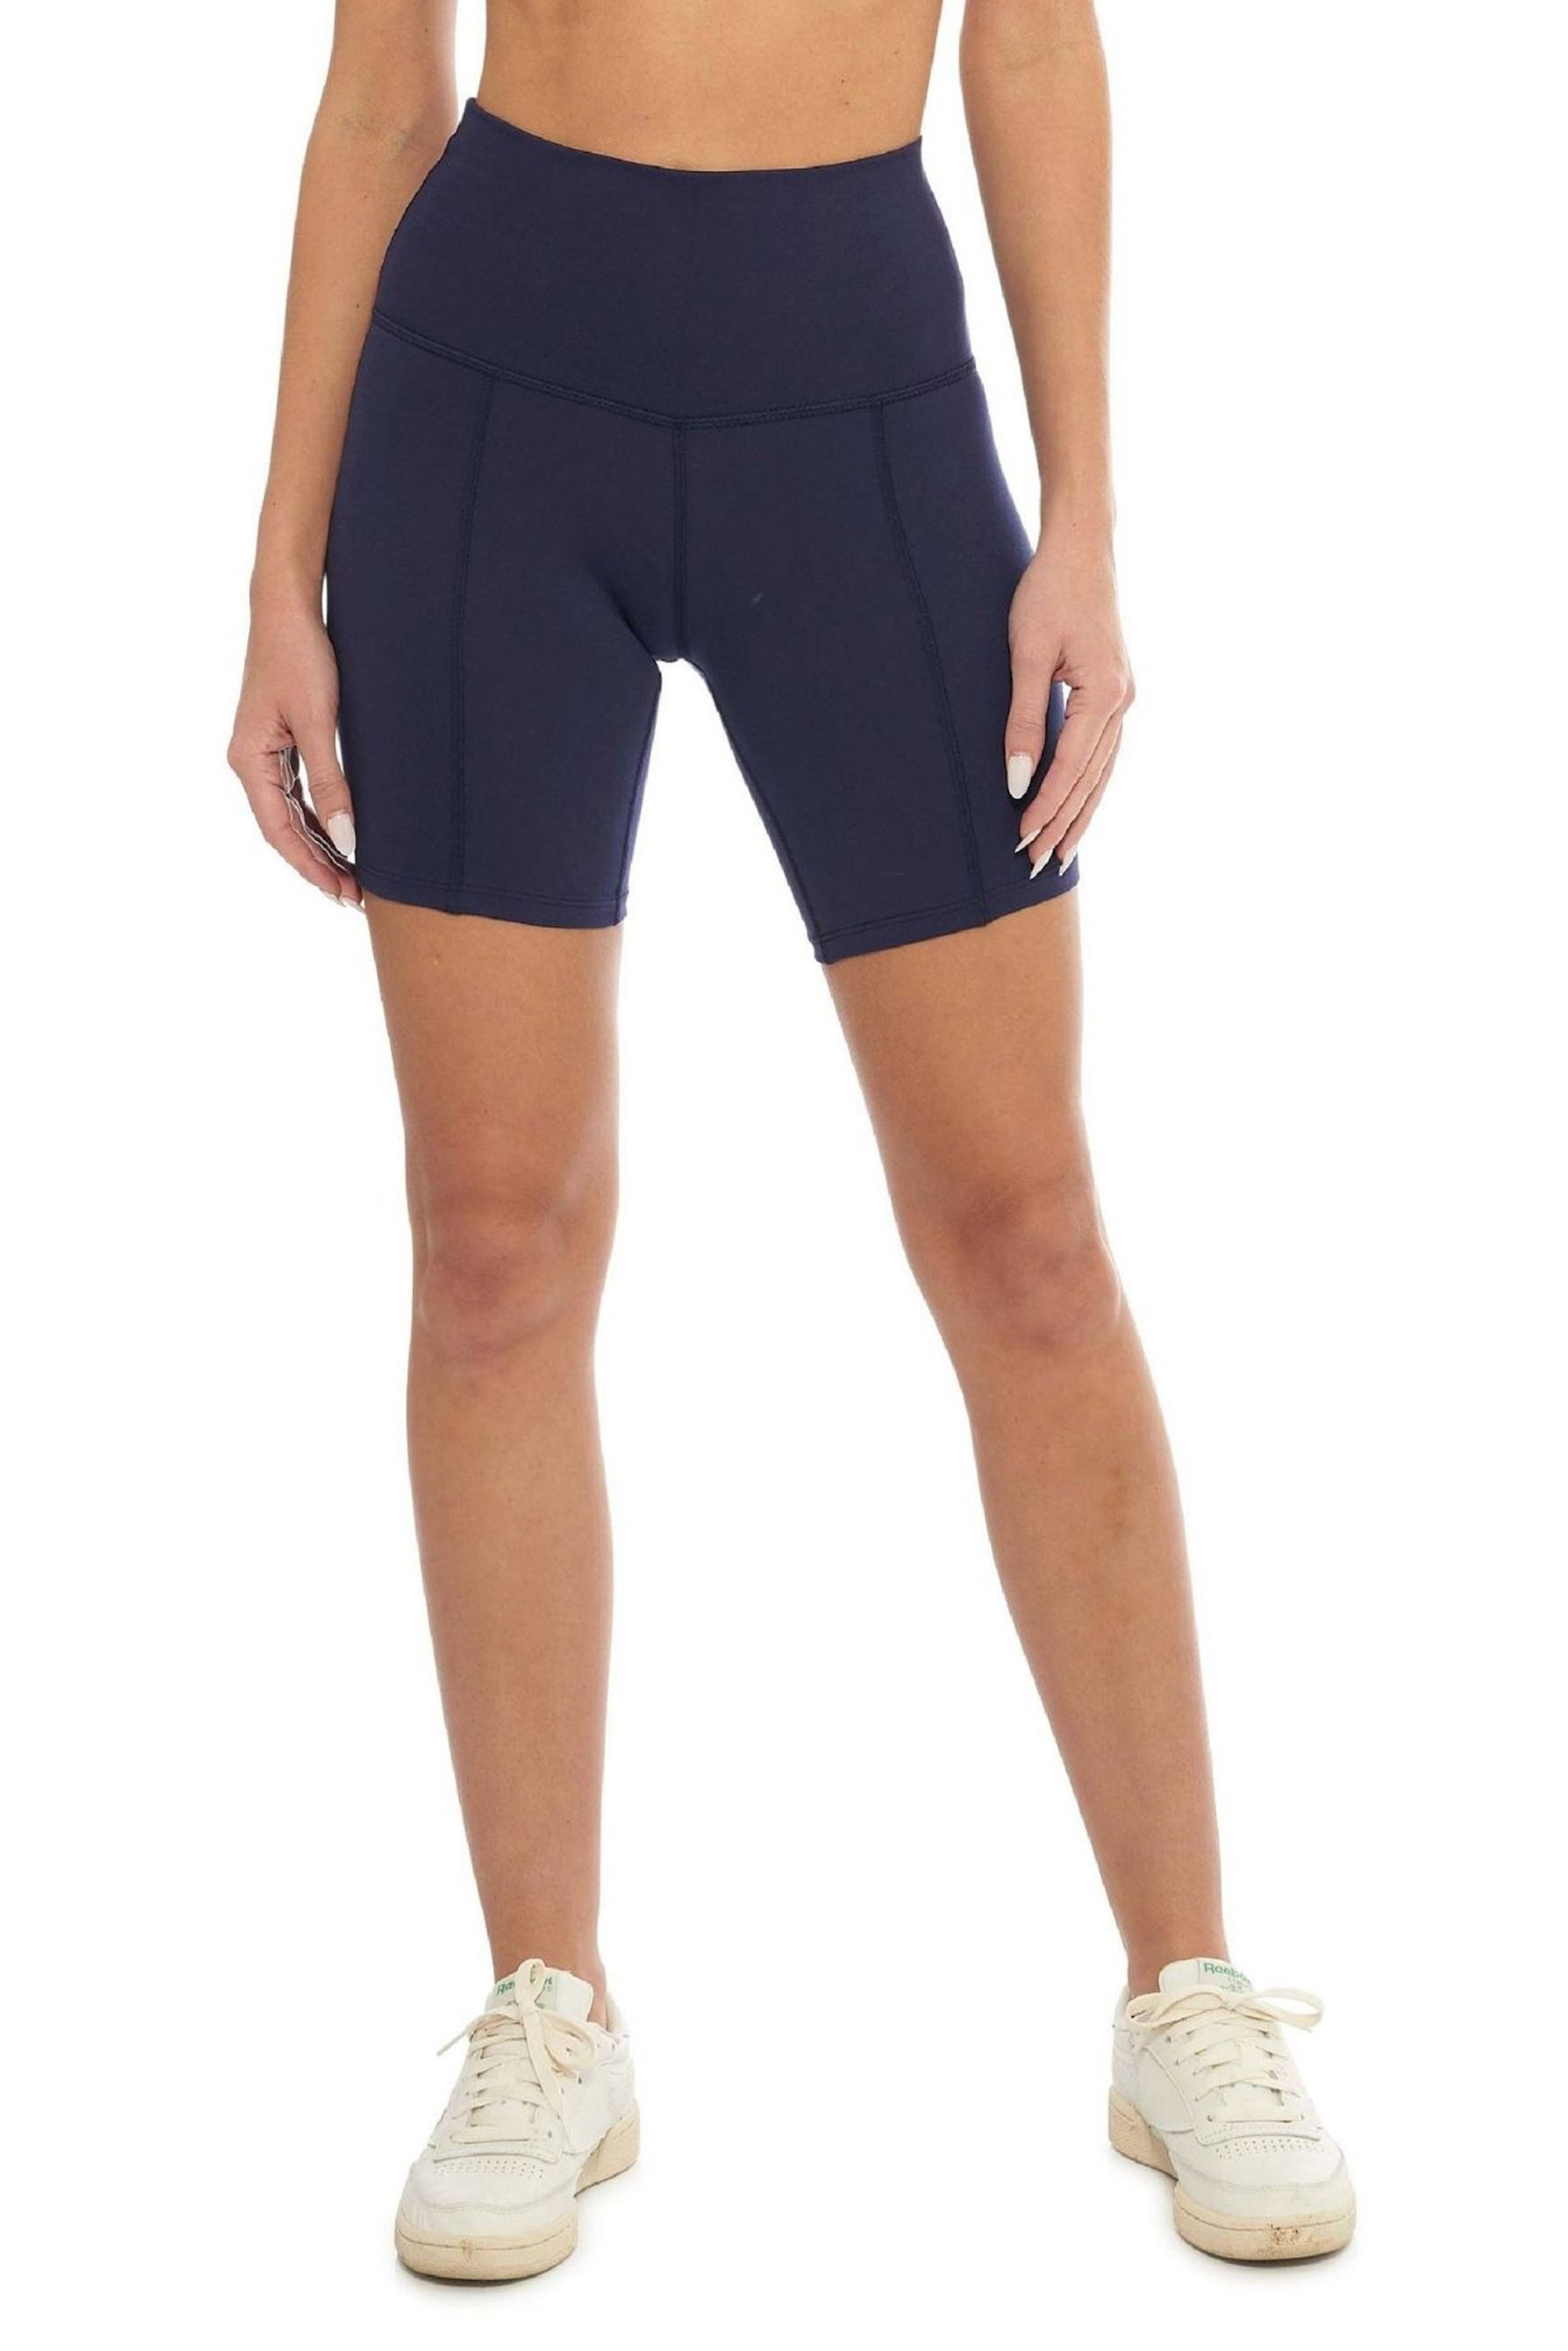 Midnight Blue Biker Short